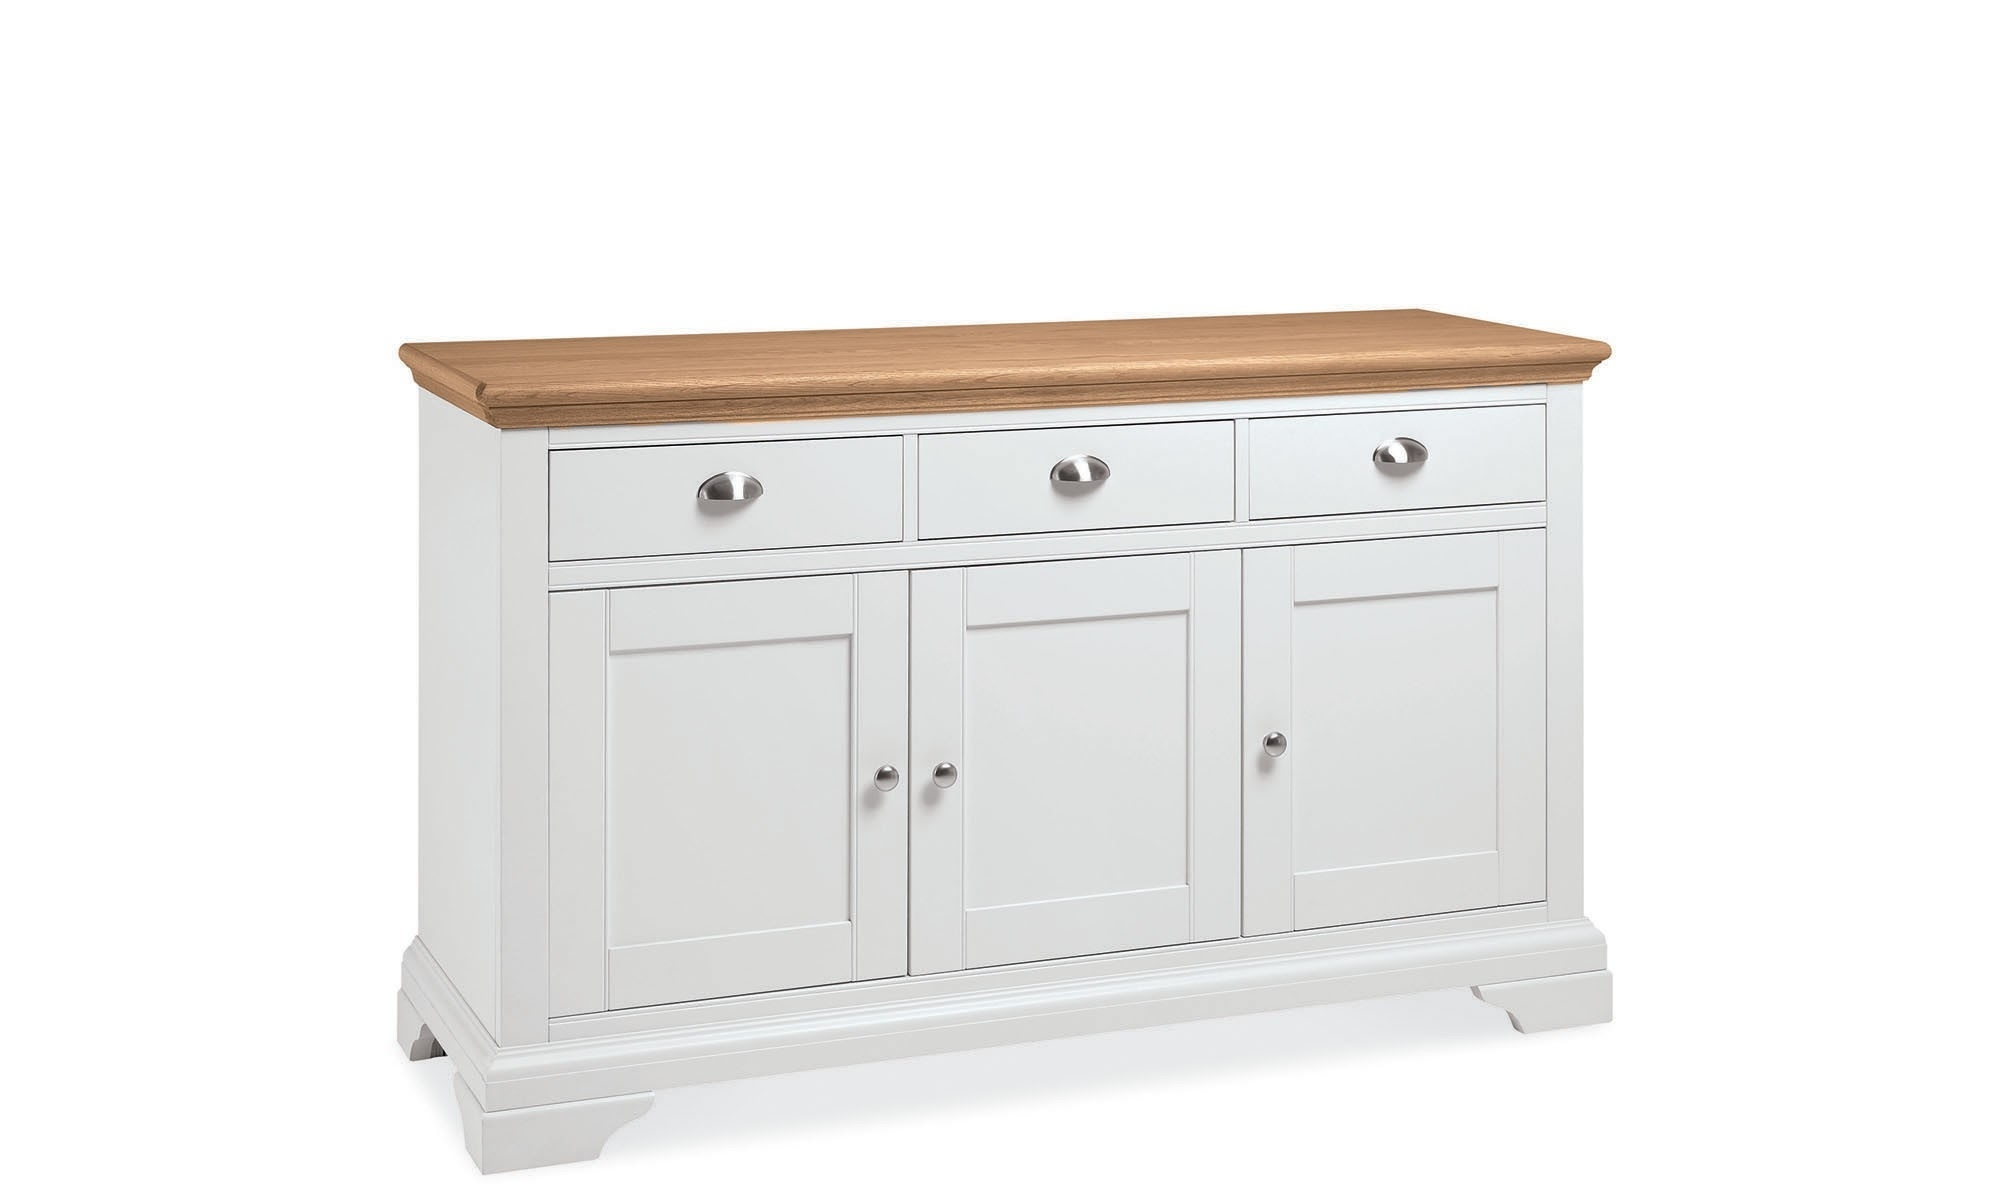 Georgie - Wide 3 Door Sideboard In Cream - Fishpools inside Natural South Pine Sideboards (Image 5 of 30)